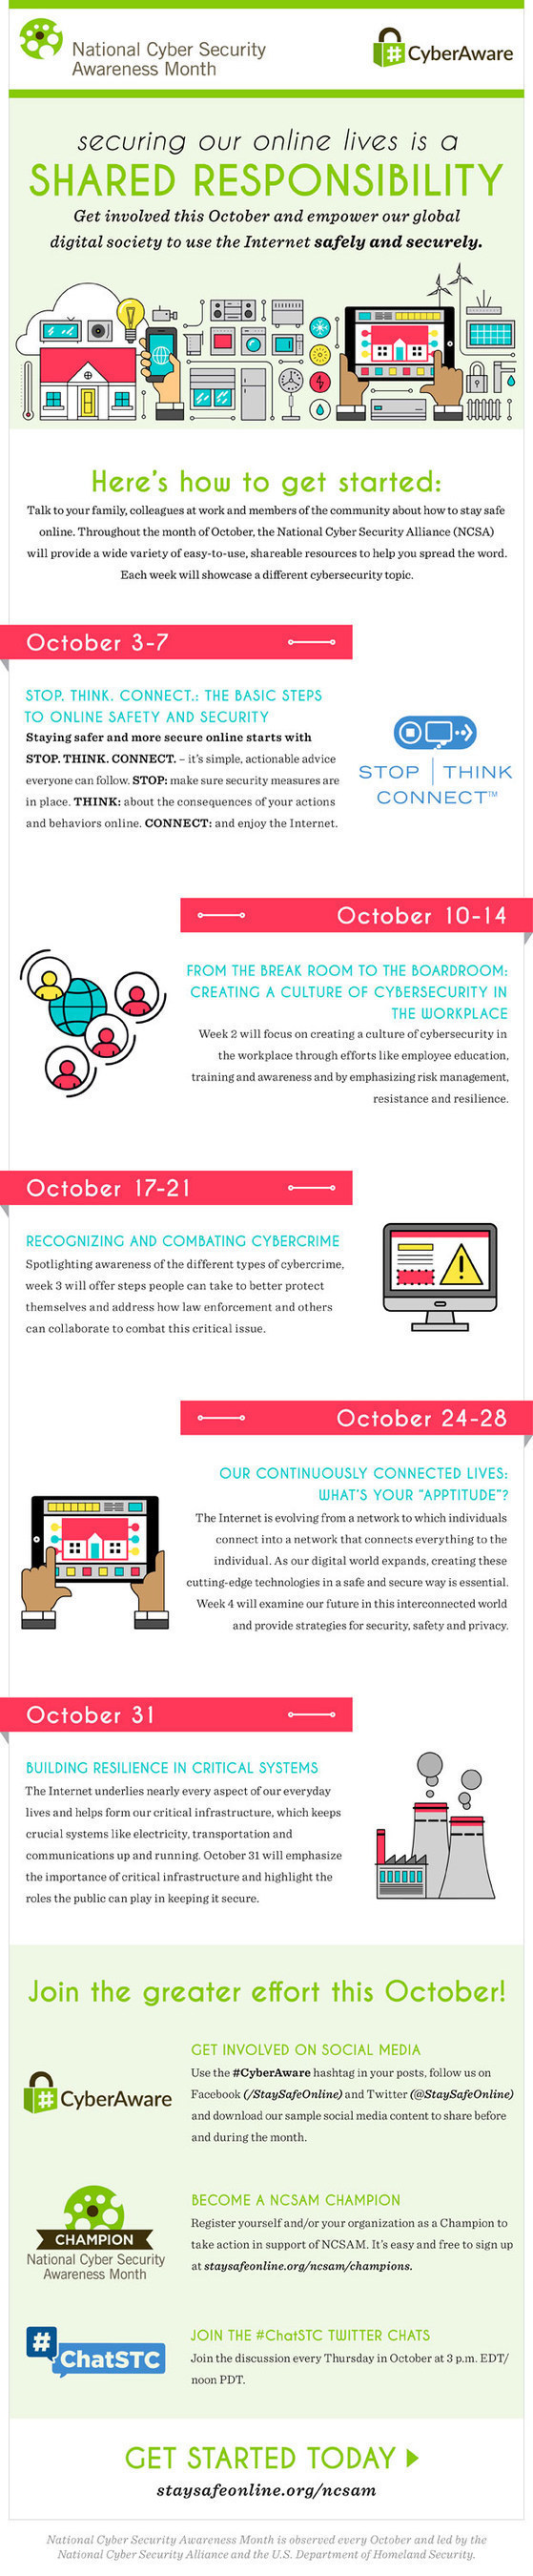 National Cyber Security Awareness Month Is Only A Month Away!